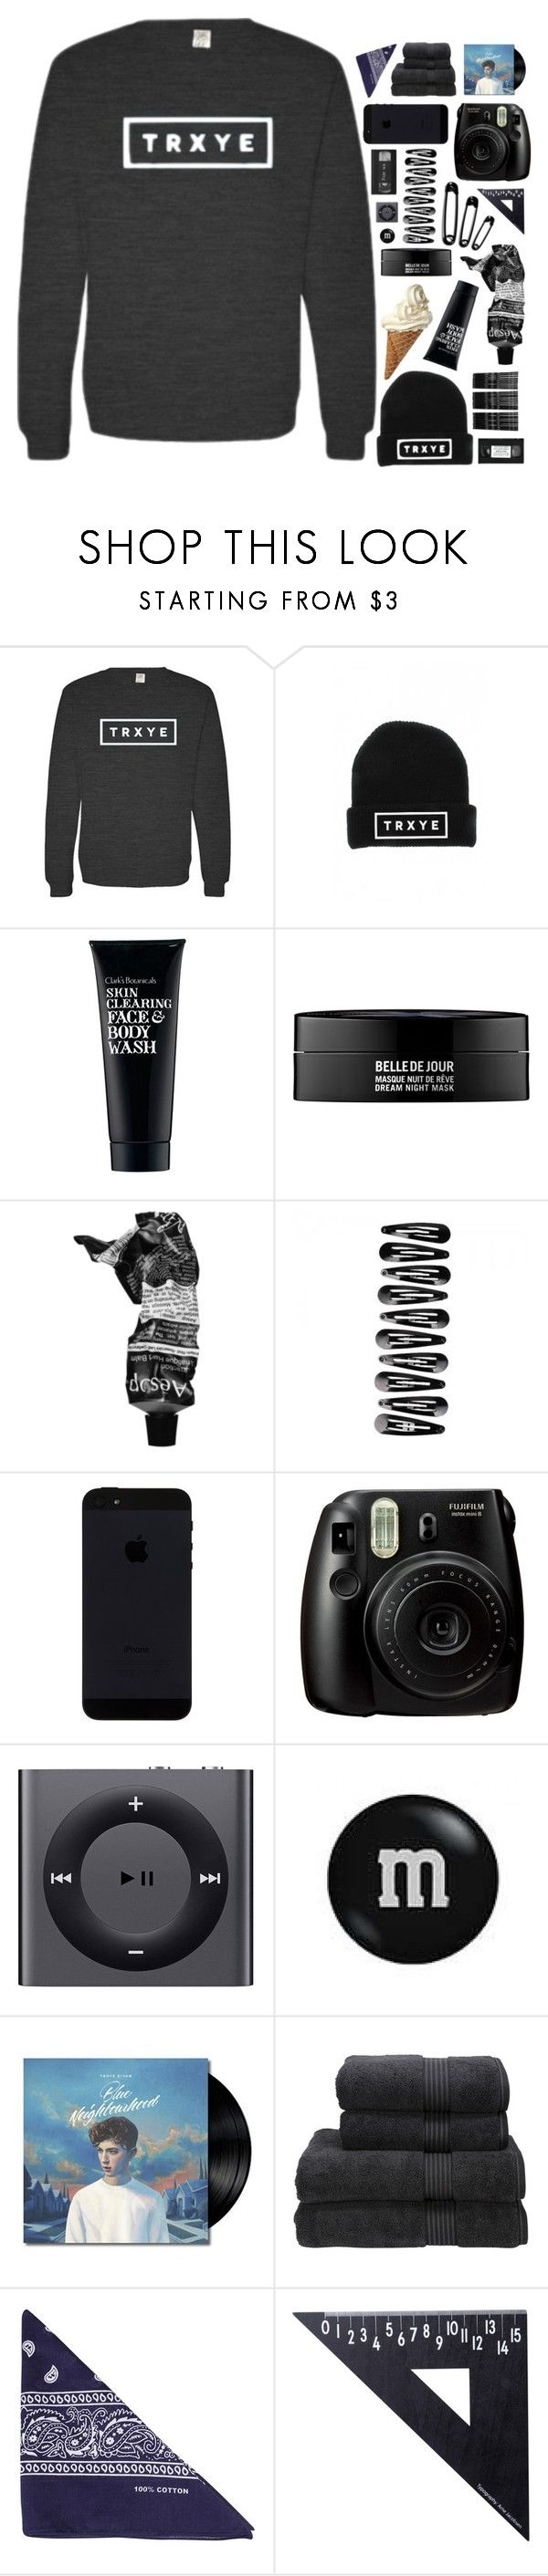 """""""Troye sivan"""" by mint-green-macaroonn ❤ liked on Polyvore featuring Clark's Botanicals, Kenzoki, Aesop, Fujifilm, Apple, Christy, NLY Accessories, Design Letters and Monki"""